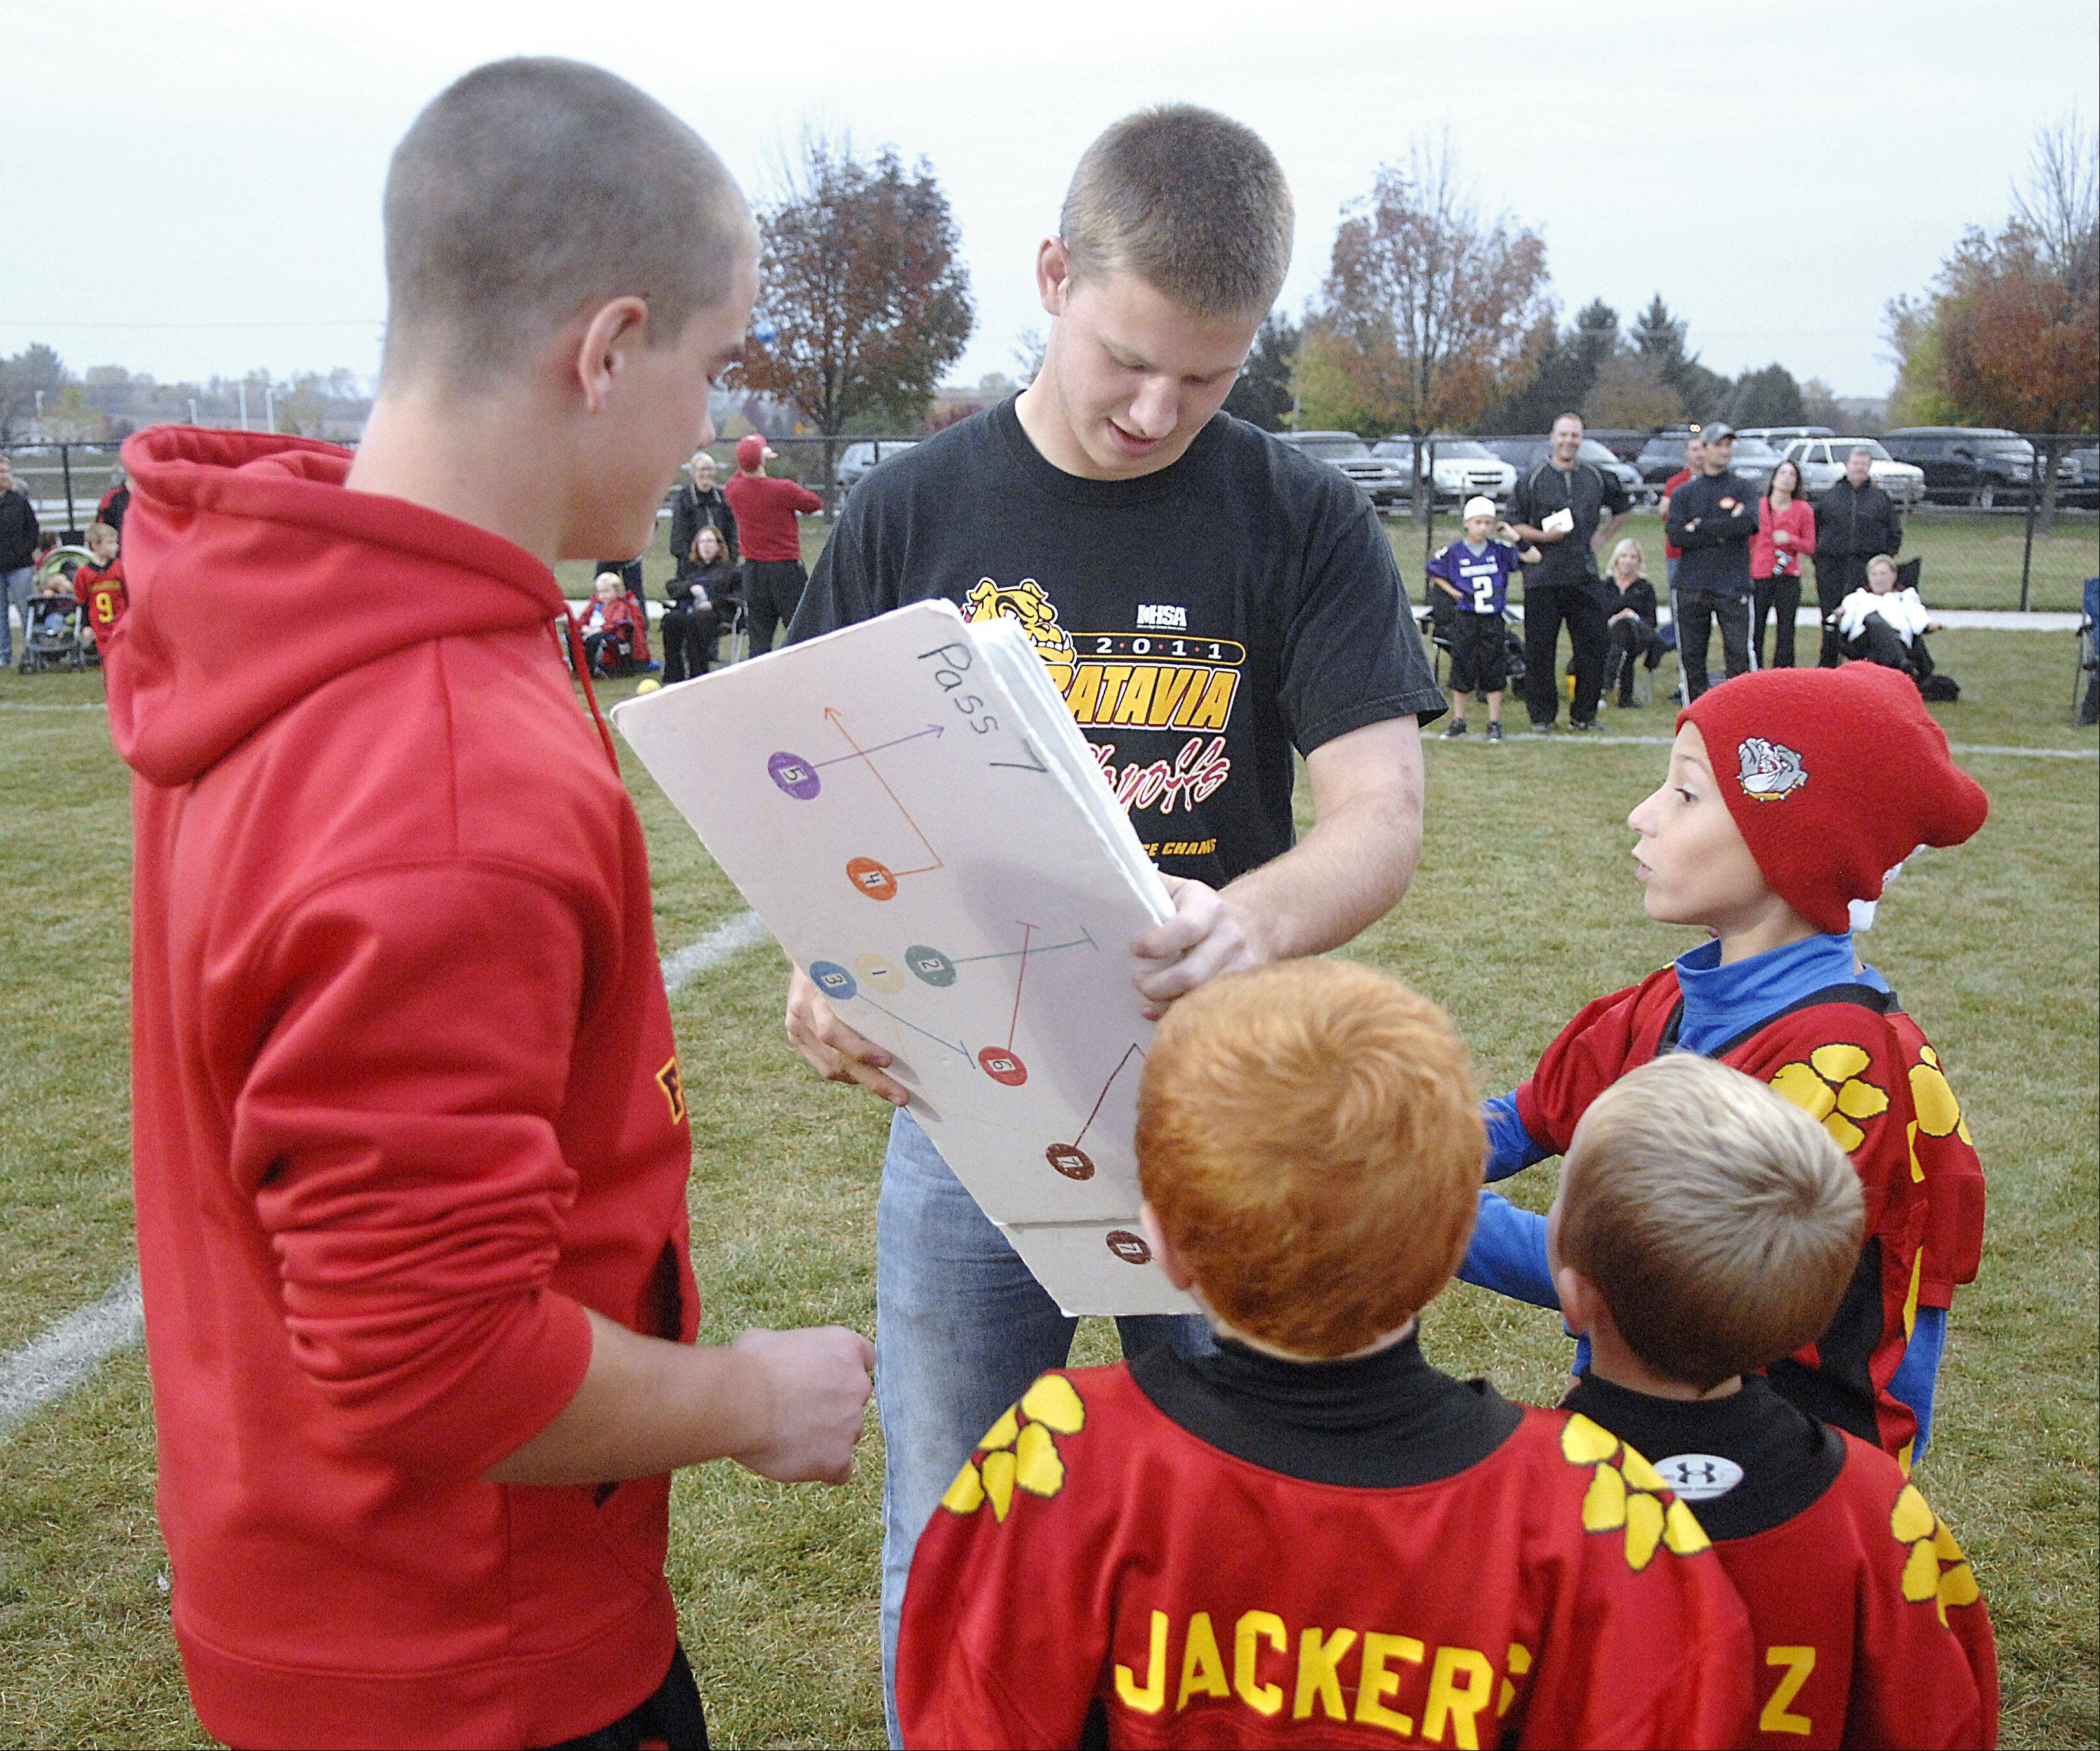 Batavia Youth Football league coaches and Batavia High School varsity football players Forrest Gilbertson, left, and Kevin Green, both 16, show their team the next play in their game.